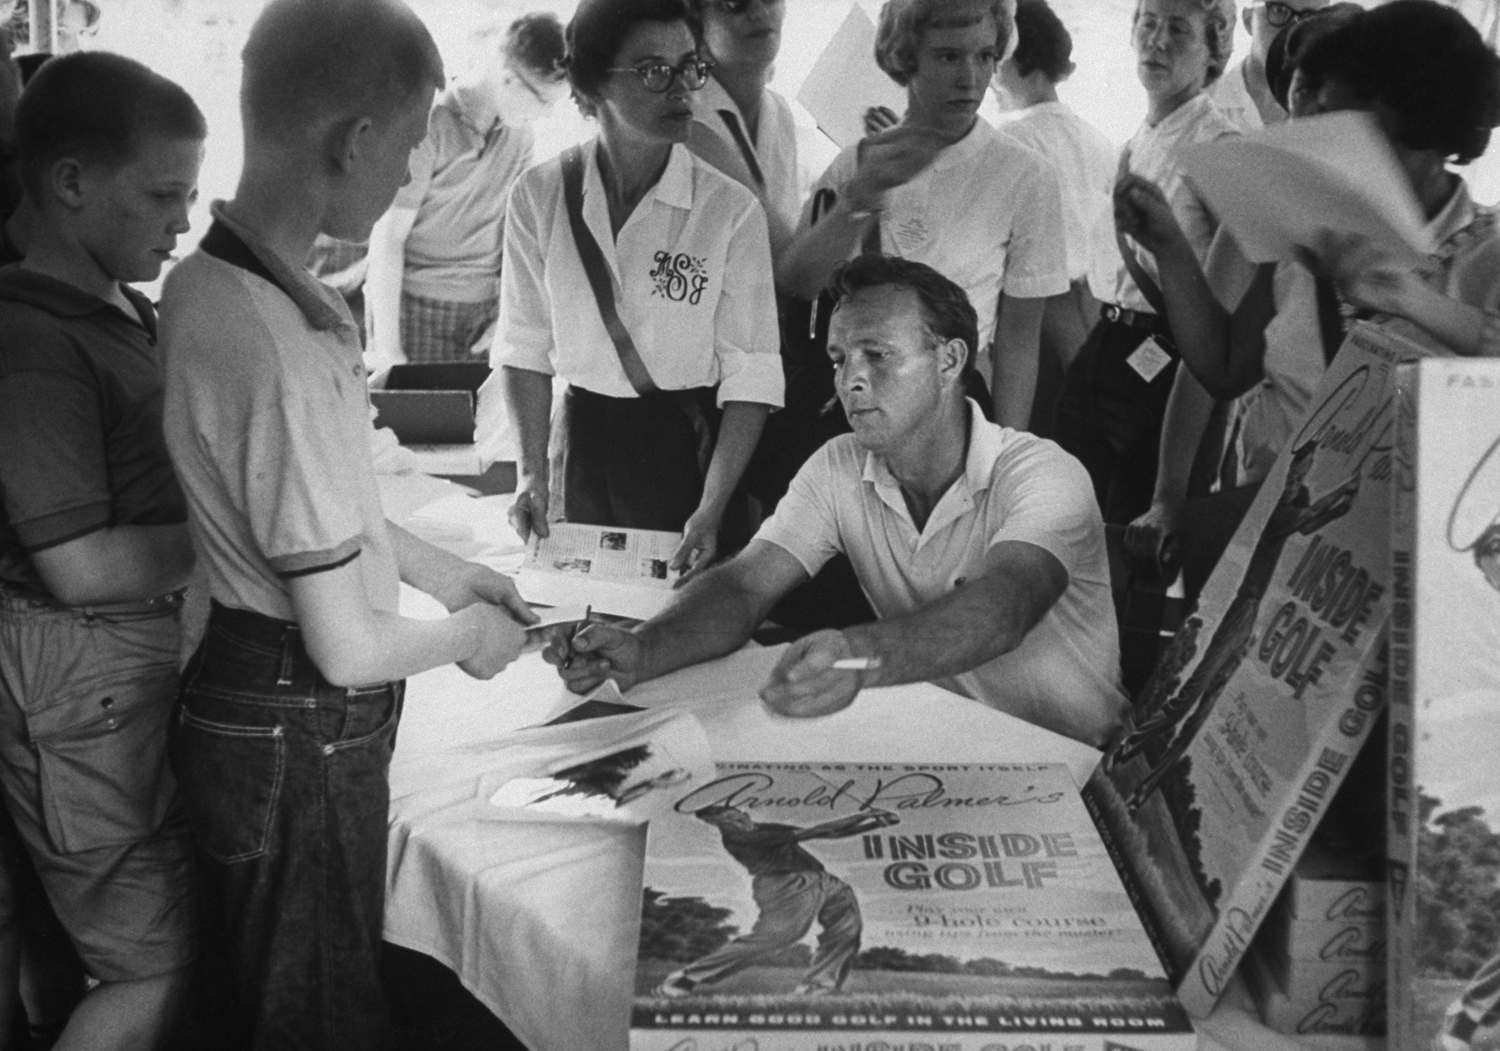 <b>Caption from LIFE.</b> Working a sideline which adds to biggest income in golf, Palmer signs autographs at stand filled with his products at a Wheeling, West Va., course.